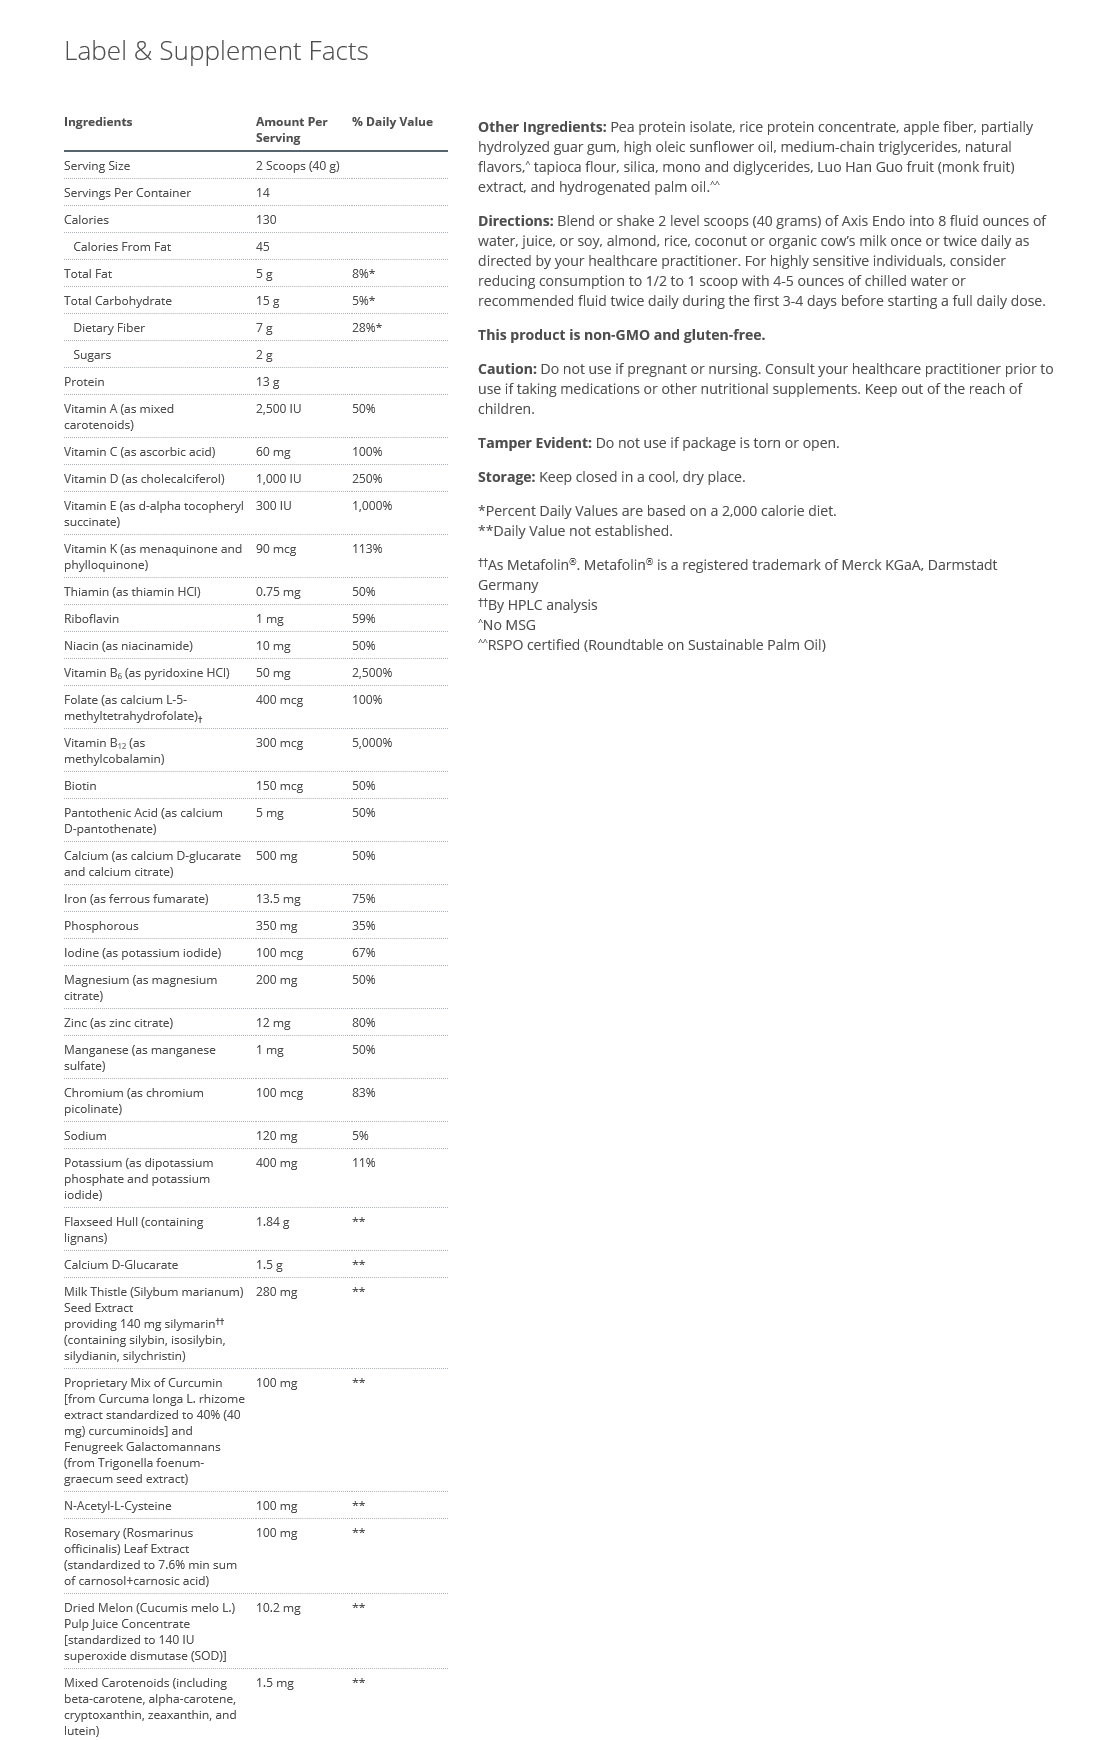 Axis Endo nutritional facts.png